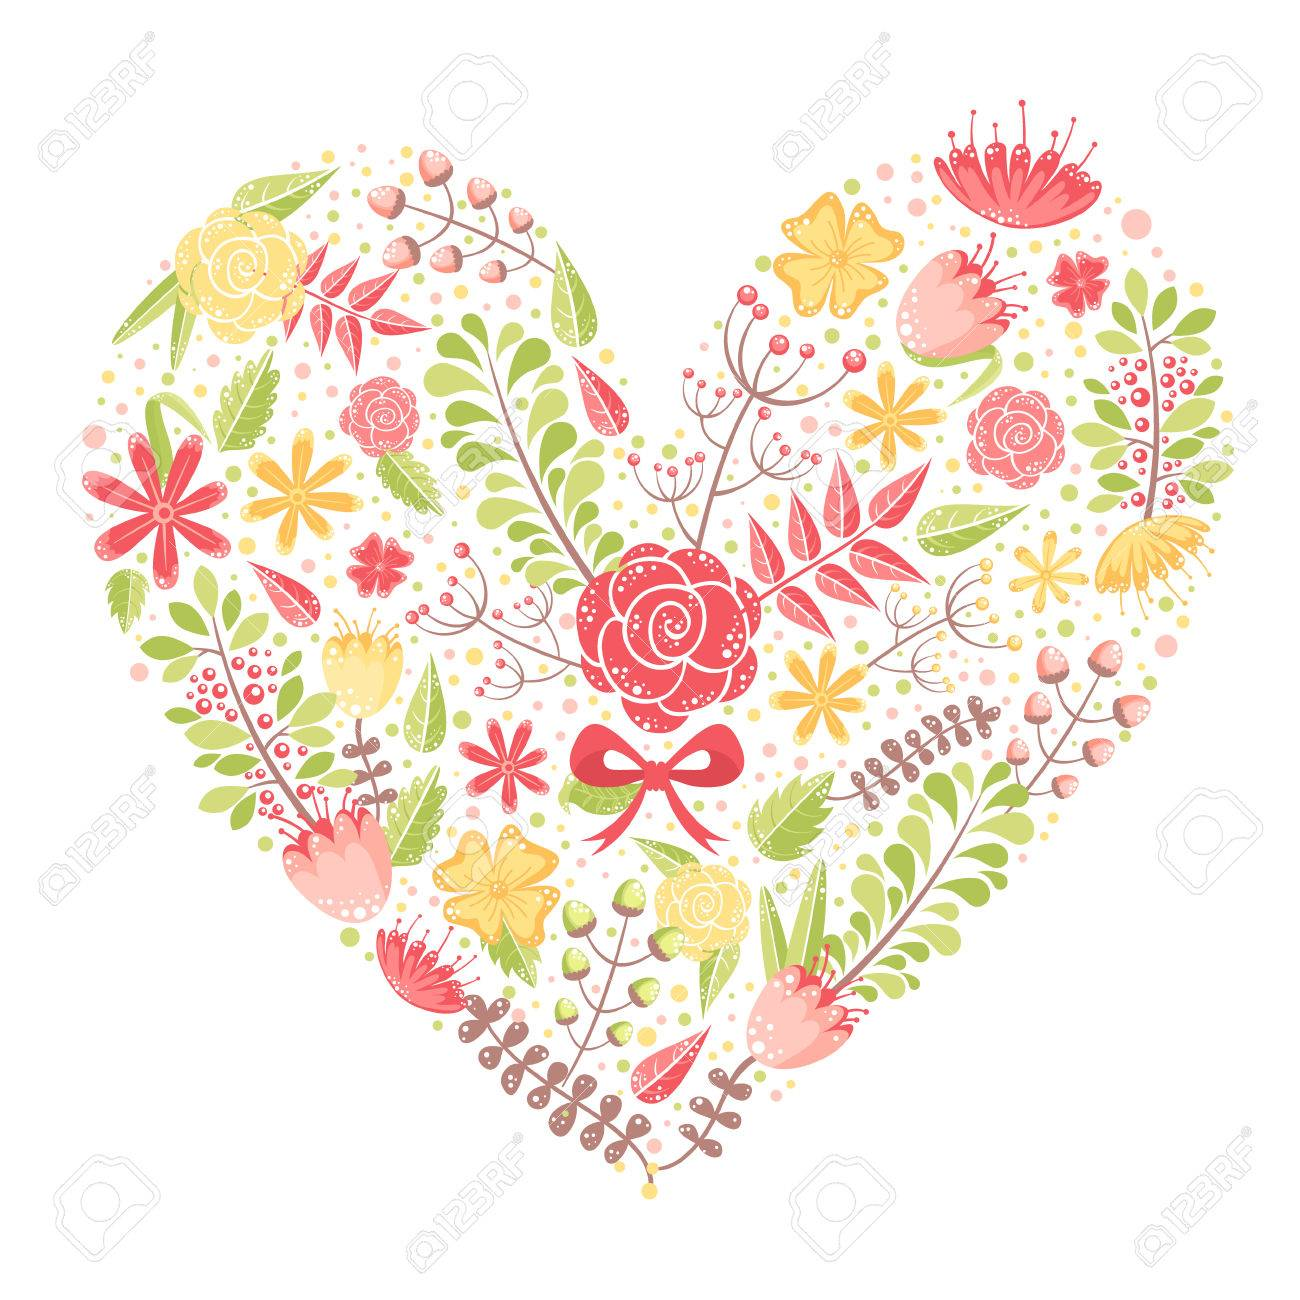 Beautiful flower heart postcard made of various floral elements with love - 24505378